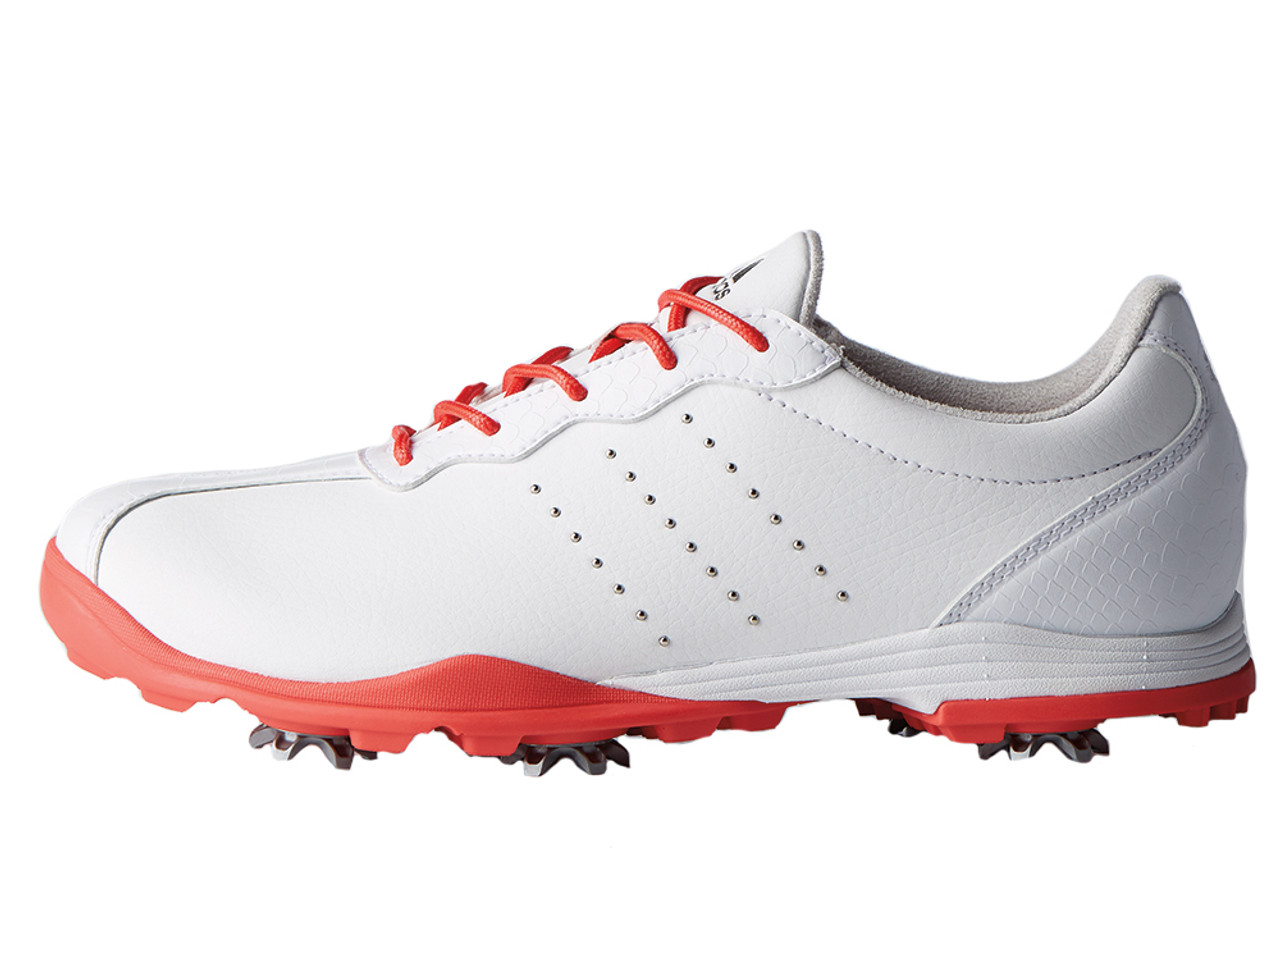 sports shoes 00784 eea65 Adidas W Adipure DC Golf Shoes - FTWR WhiteReal Coral - Ladi